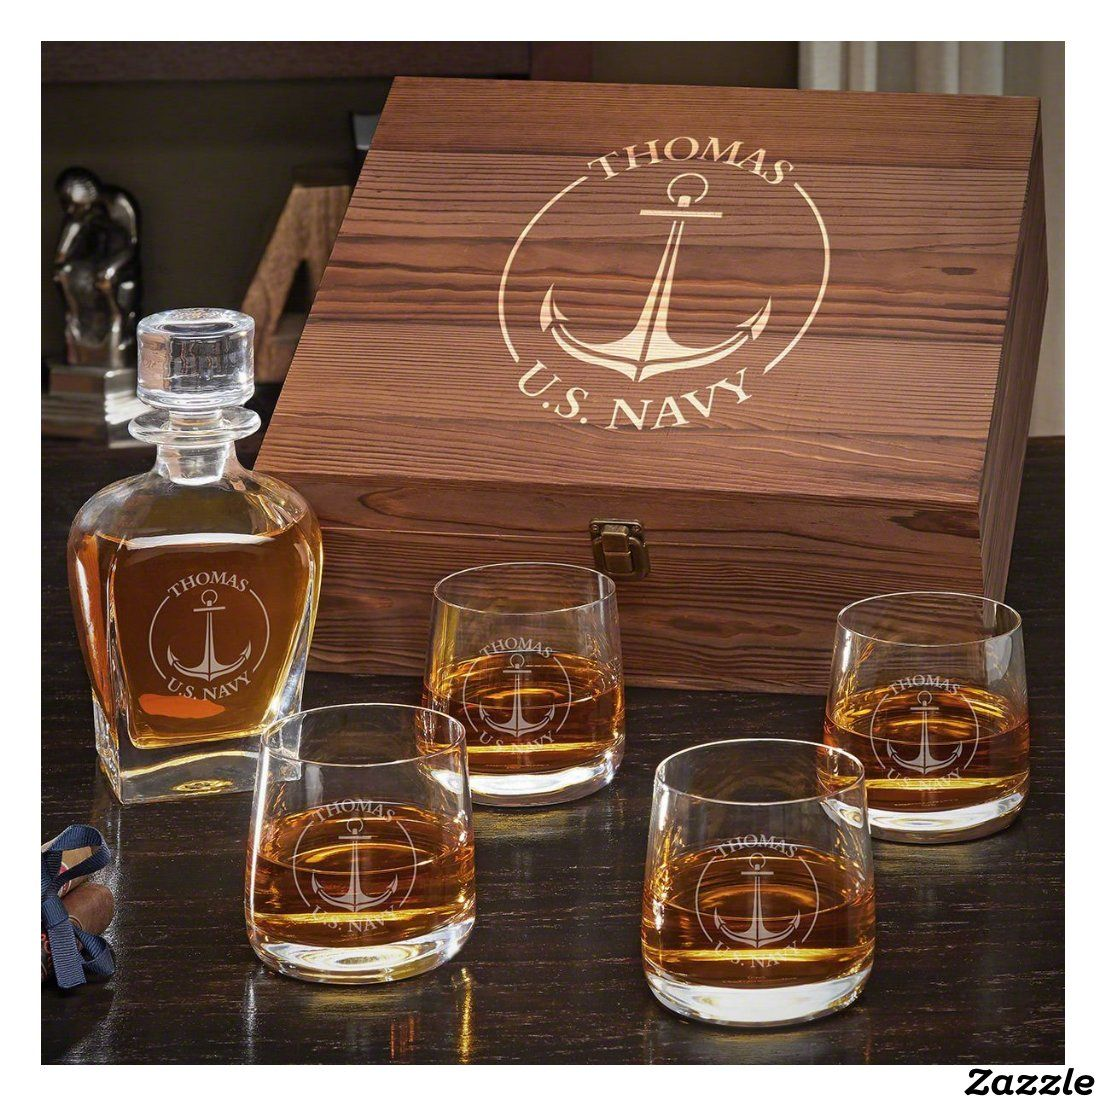 U S Navy Benson Glass Set With Draper Decanter Zazzle Com Whiskey Gift Set Whiskey Gifts Whiskey Lover Gifts